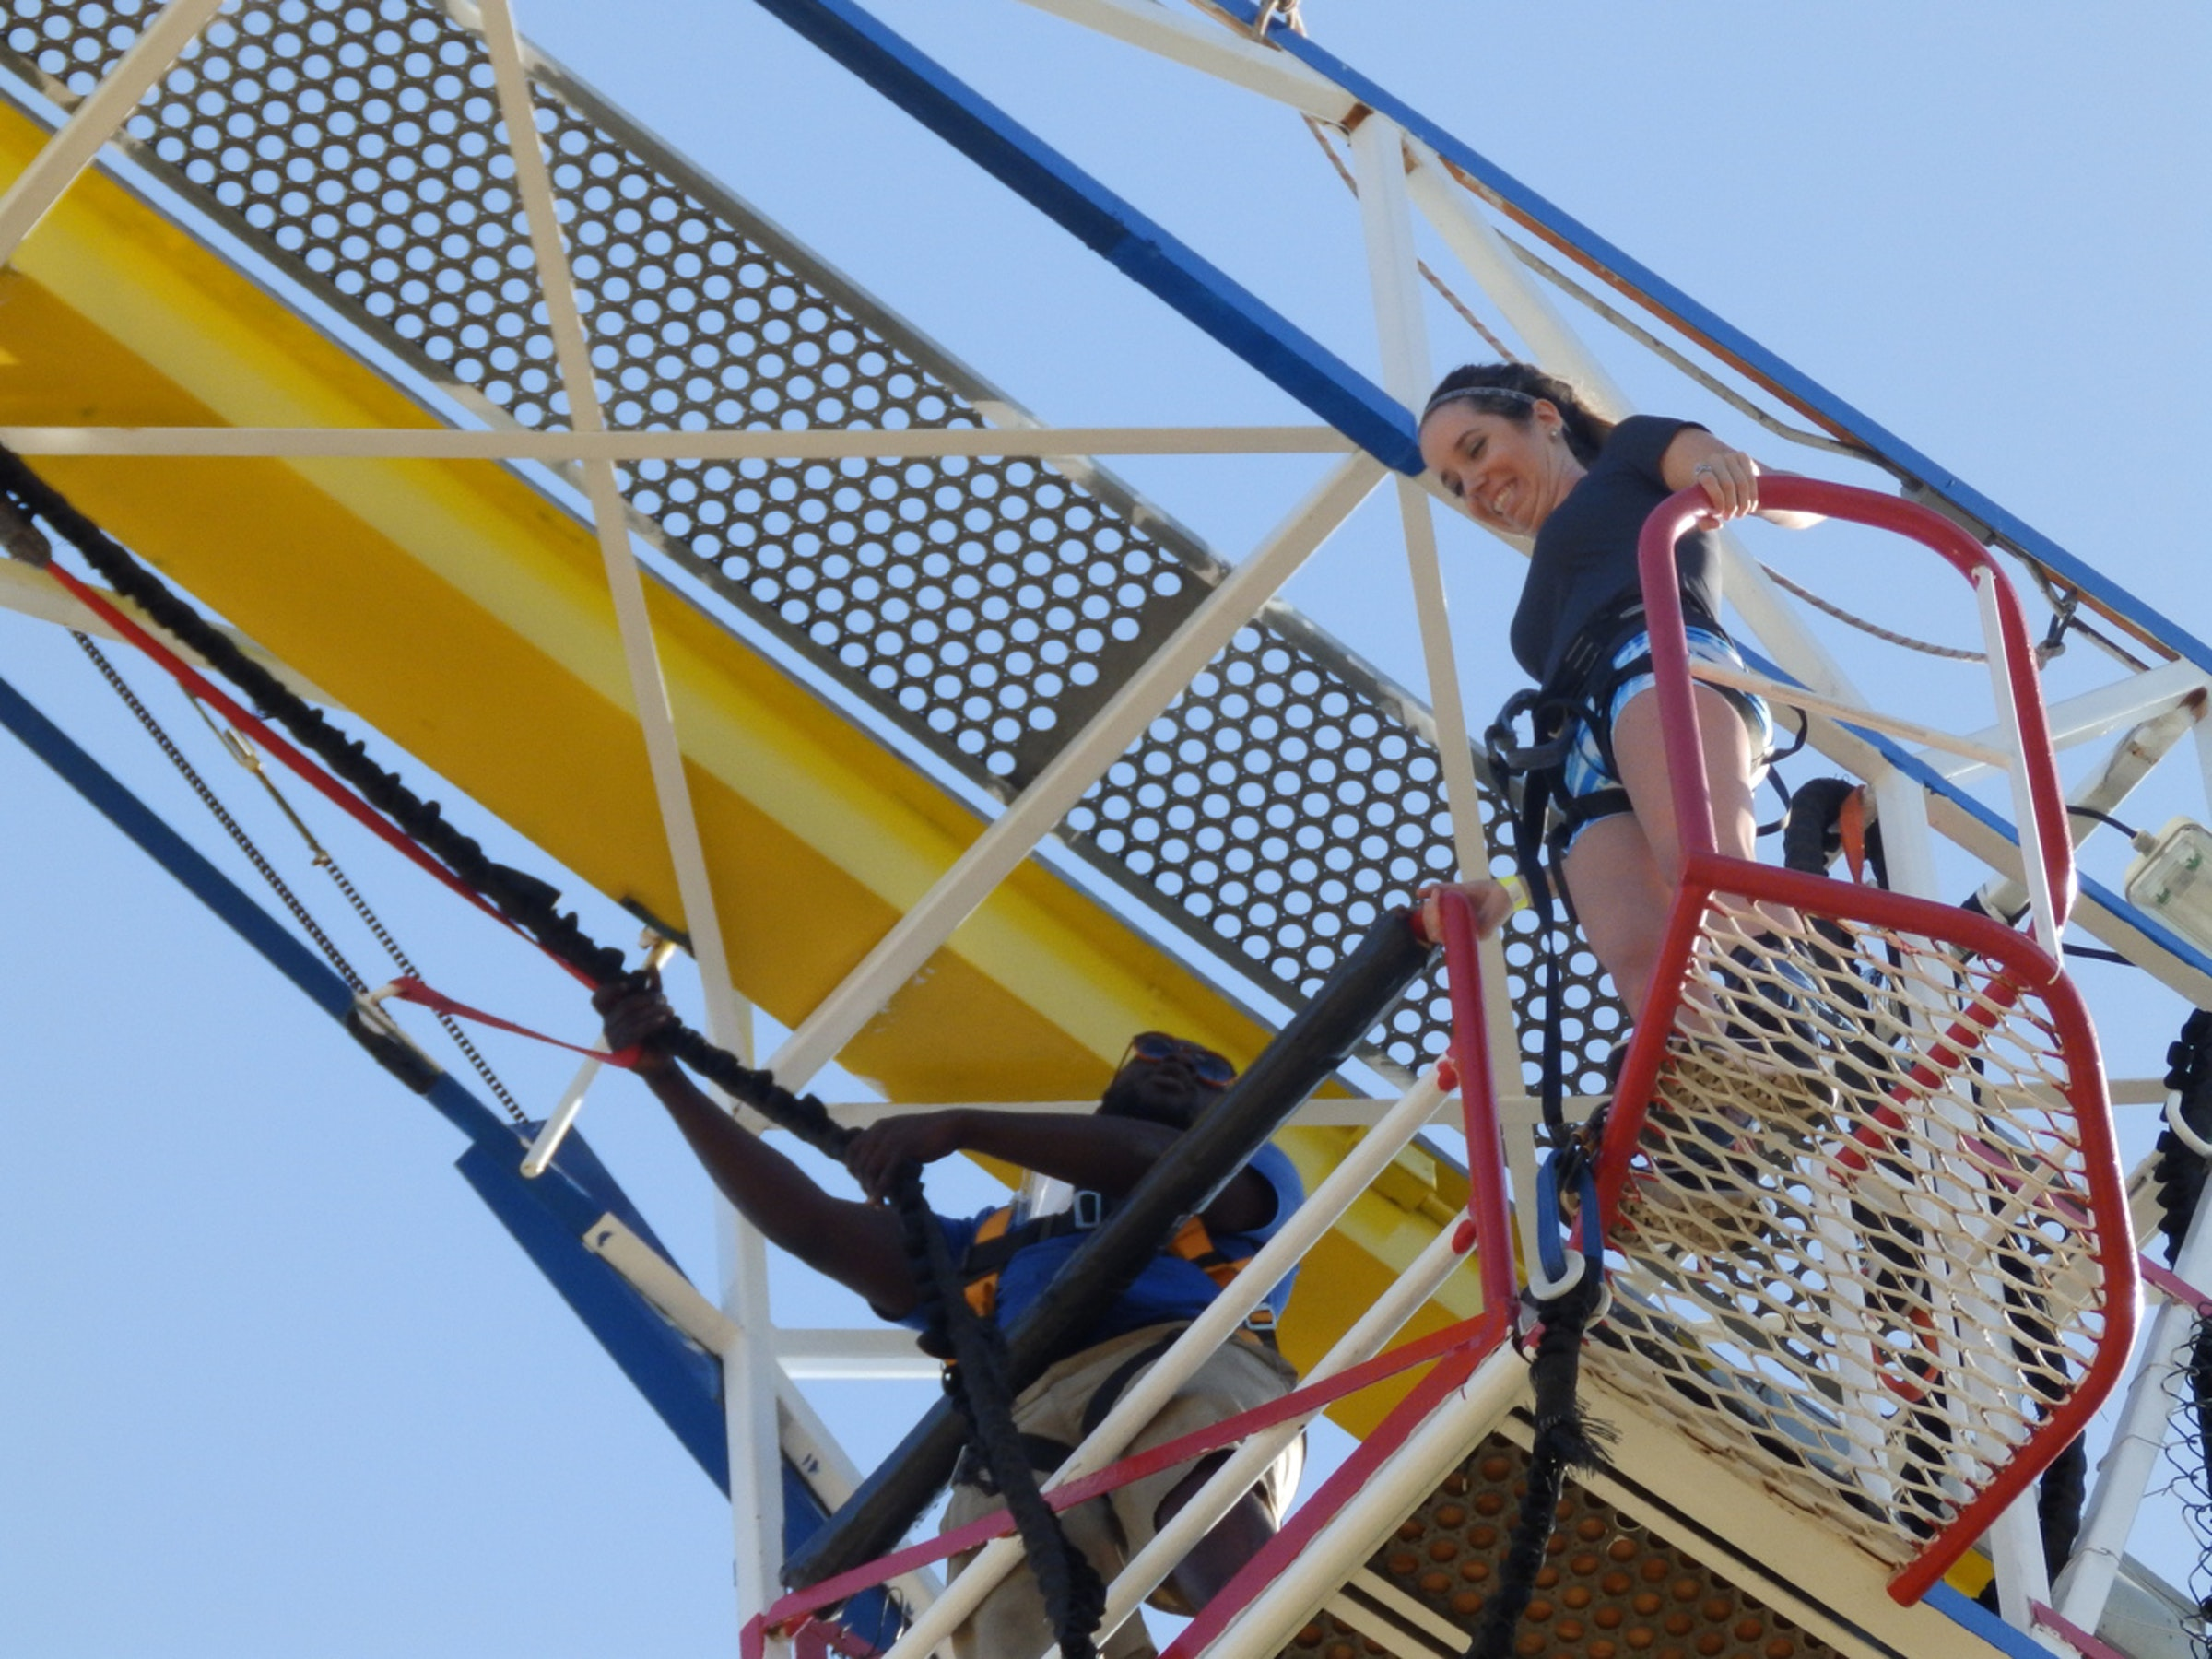 Zero Gravity Thrill Amusement Park in Beyond Dallas